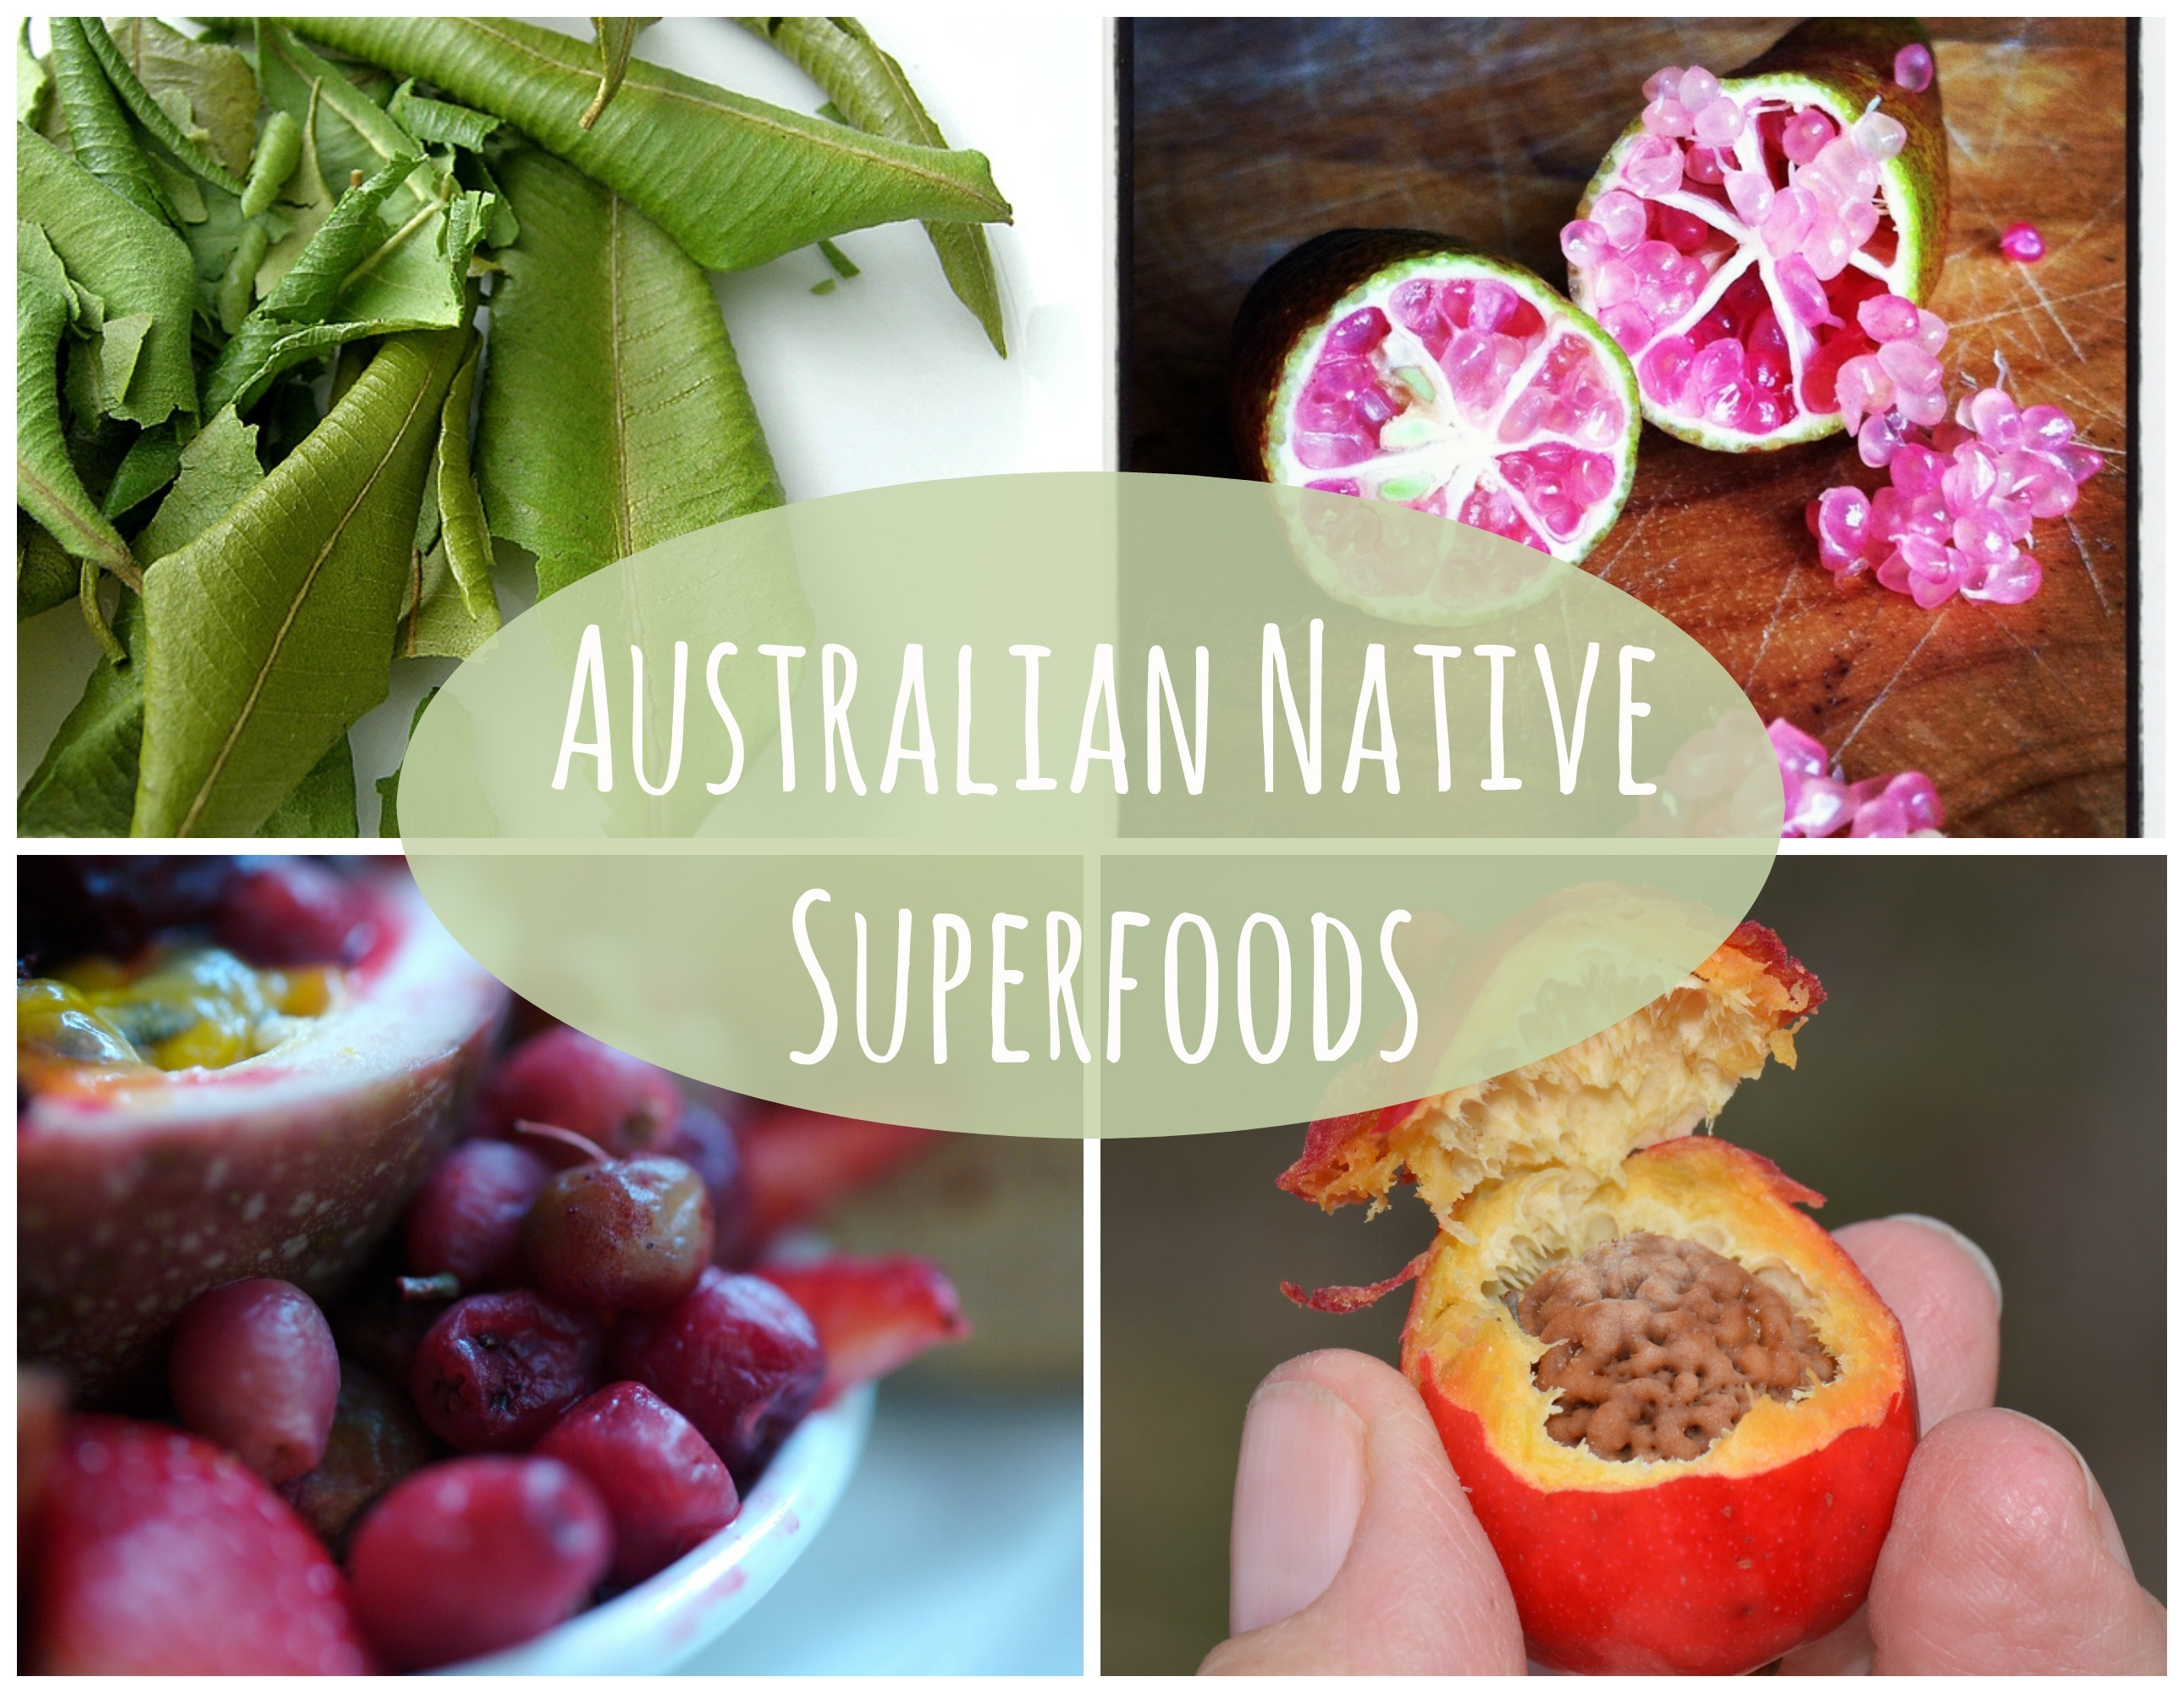 Australian native superfoods